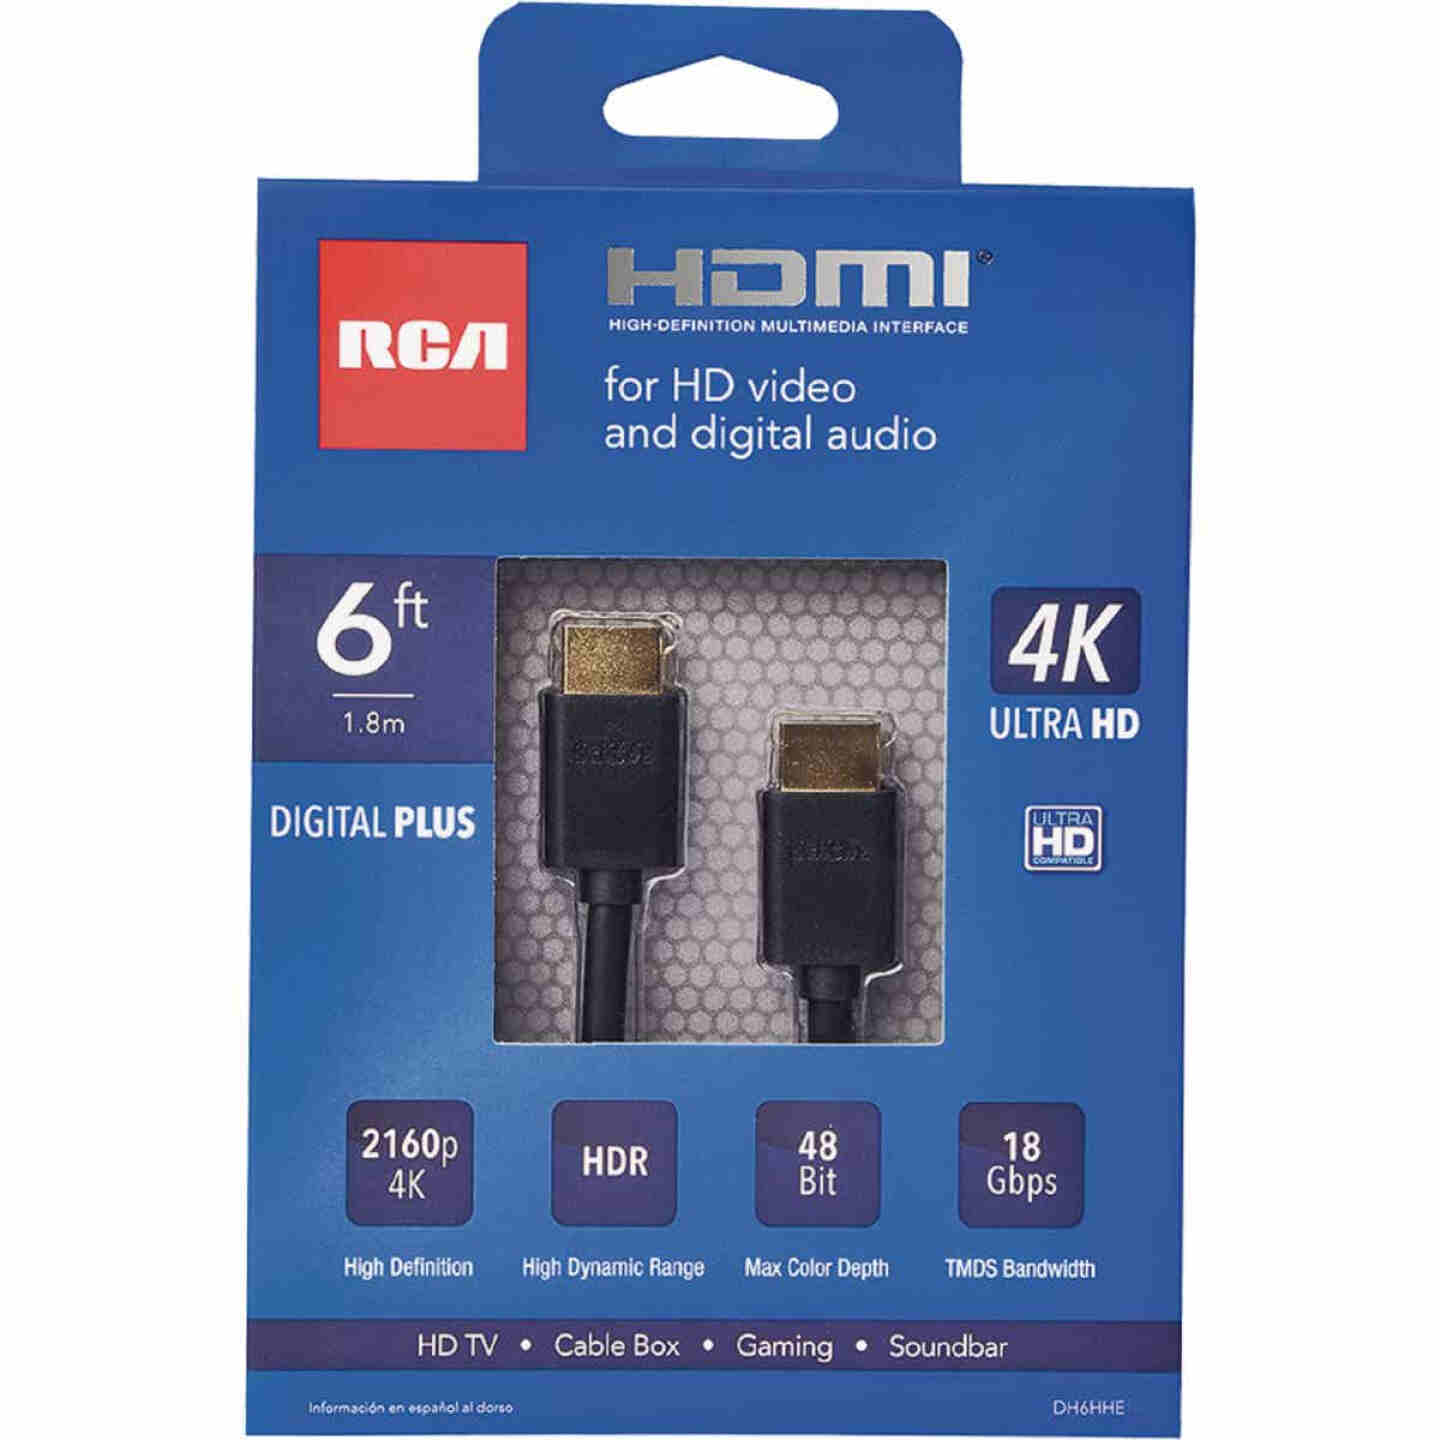 RCA 6 Ft. White 1080P Digital Plus HDMI Cable Image 1